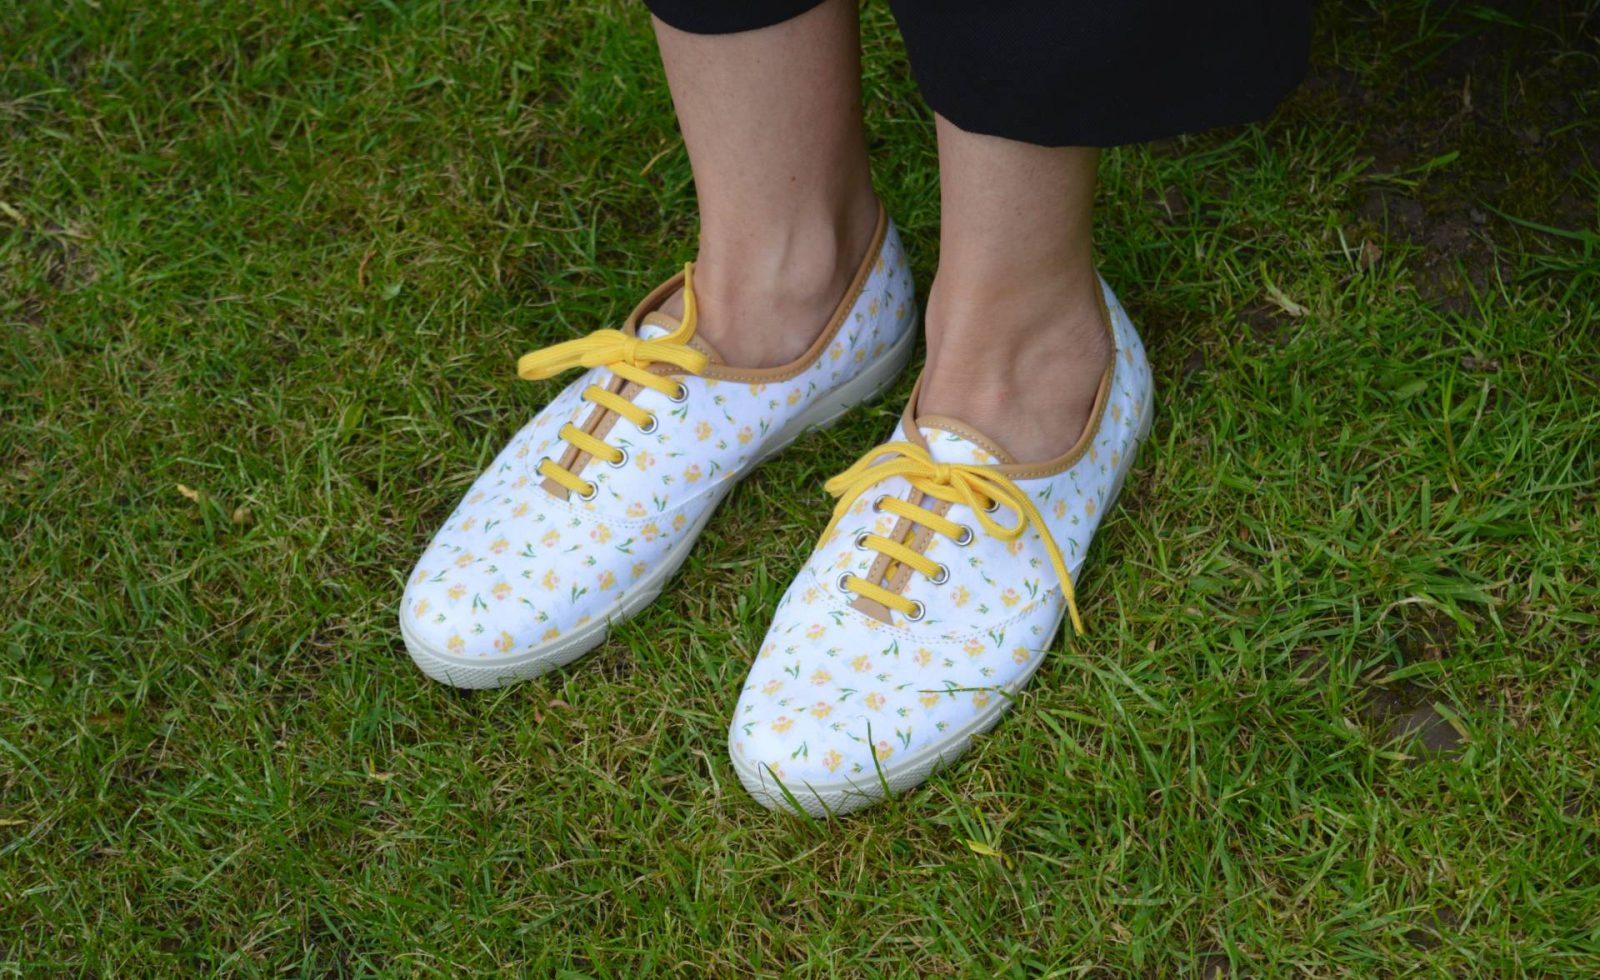 Styling floral prints for a comfy office-appropriate look, Hotter Mabel daffodil shoes